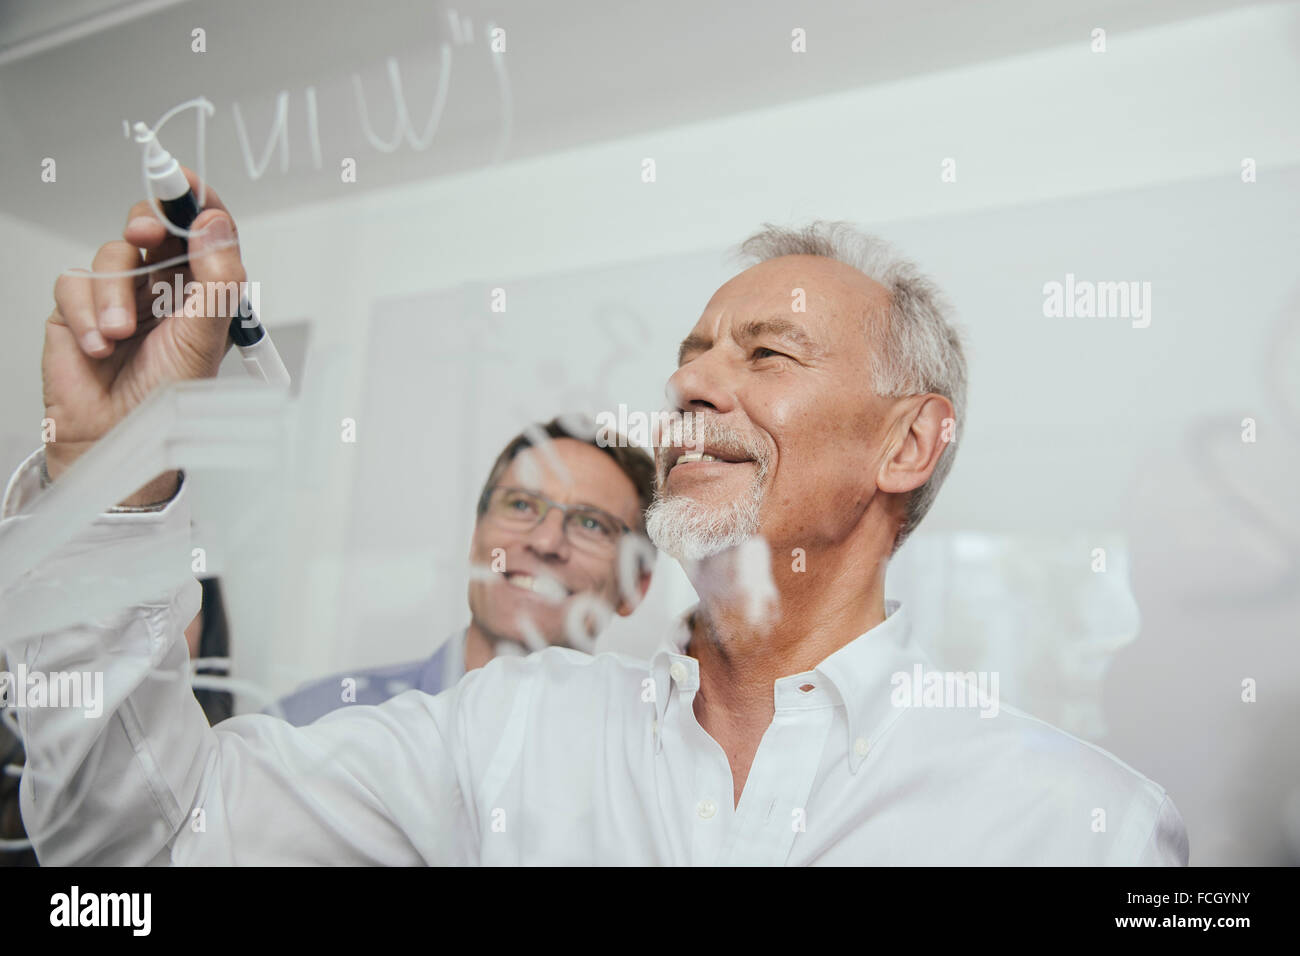 Two men writing onto glass wall in office - Stock Image